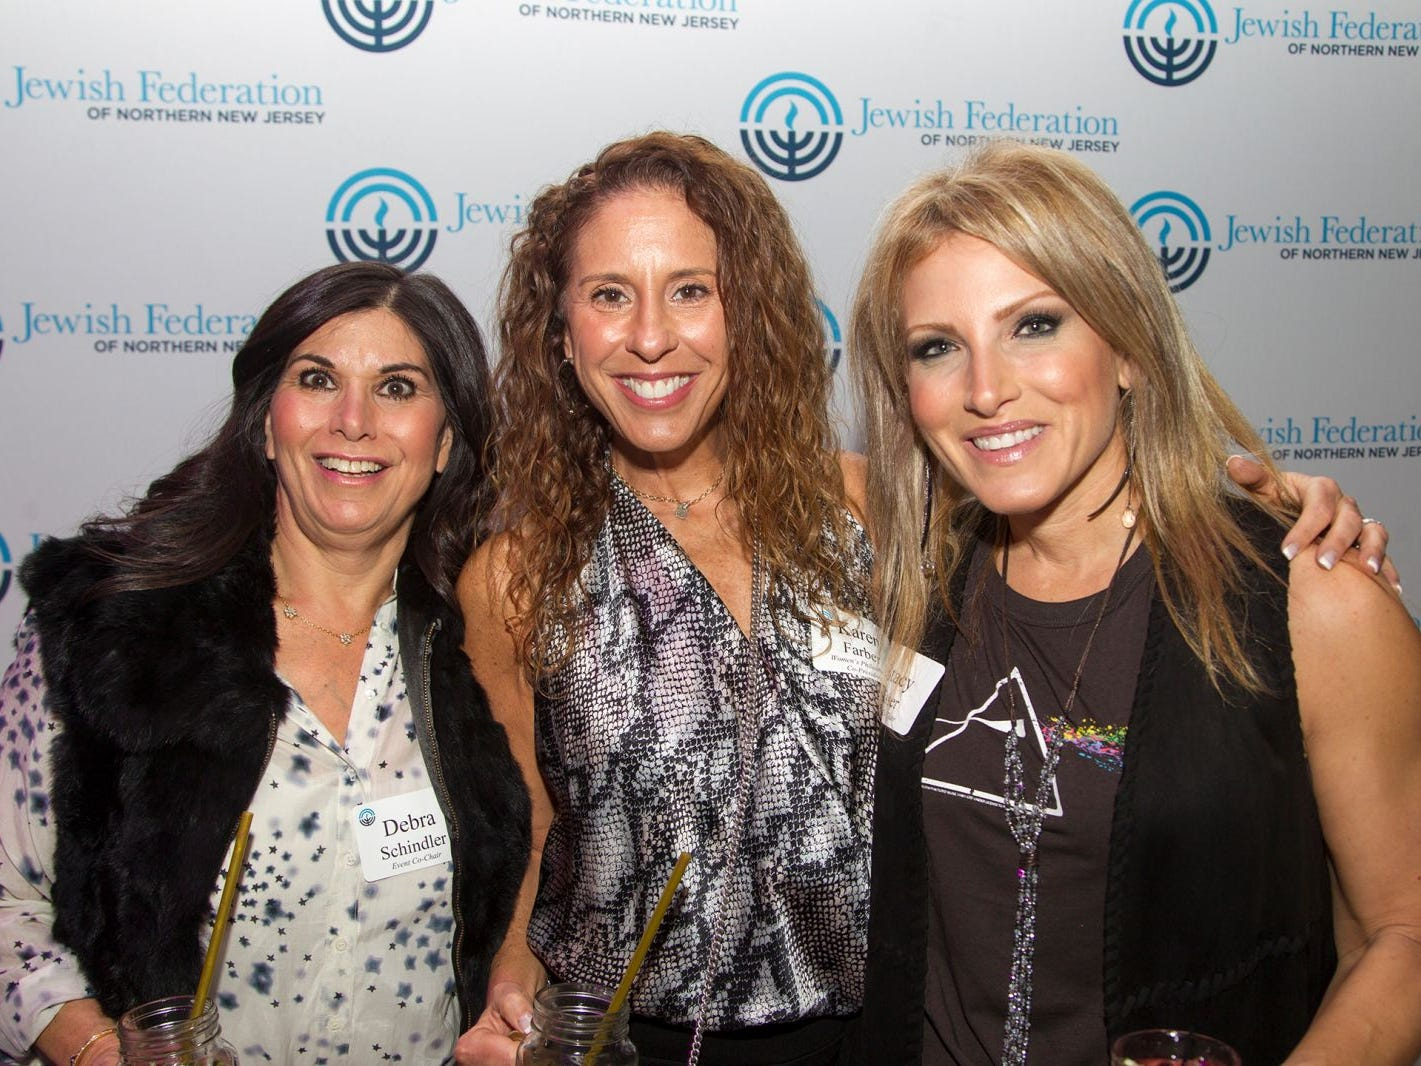 Debbie Schindler, Karen Farber, Stacy Esser. Jewish Federation of Northern New Jersey held its first Girl's Night Out dance party at Space in Englewood. 01/24/2019